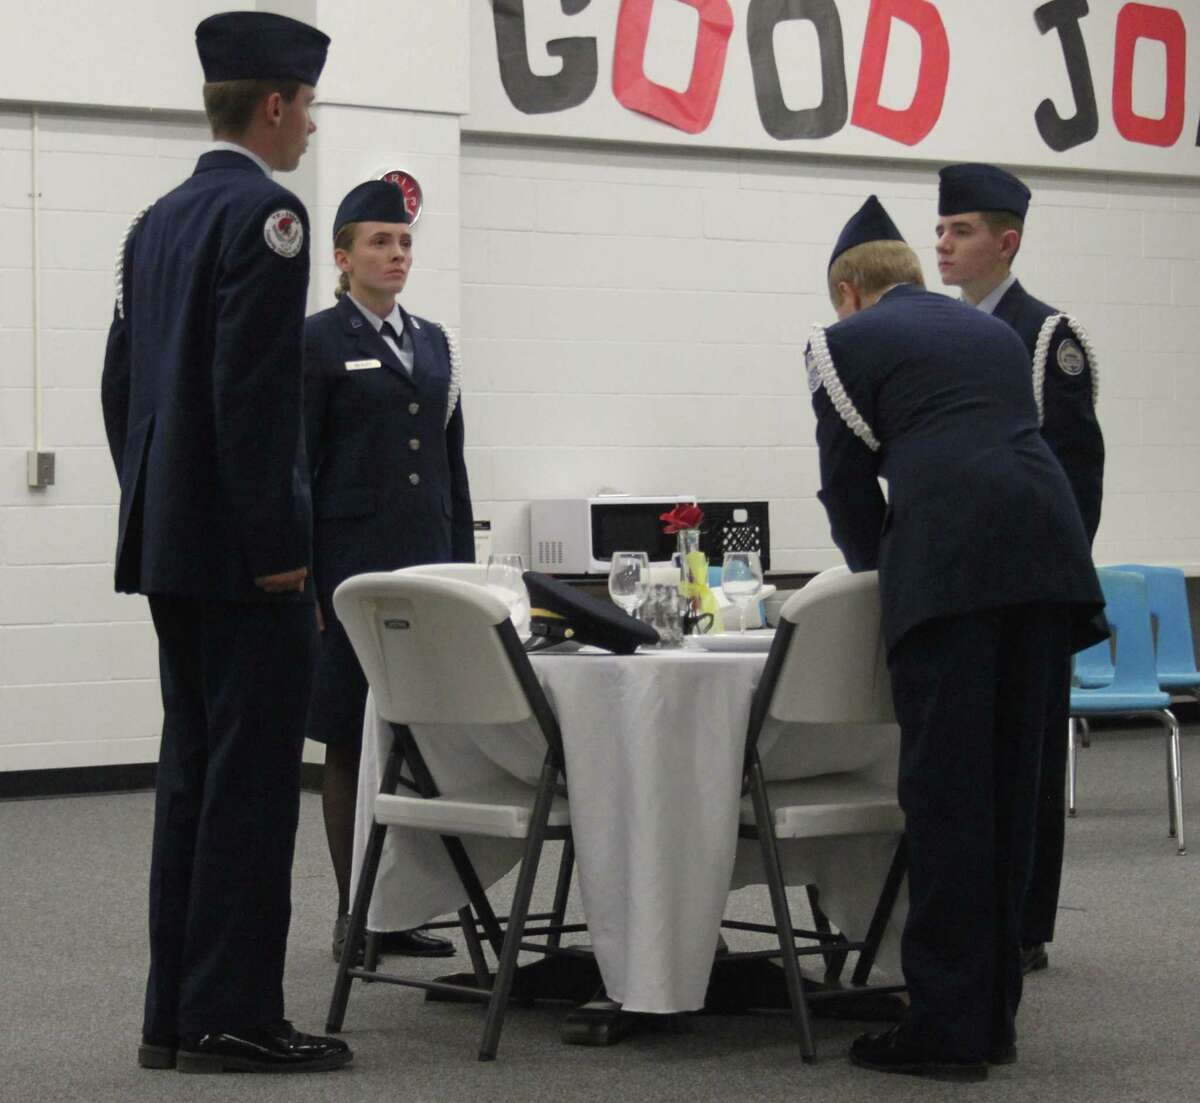 Four Coldspring-Oakhurst CISD JROTC cadets place hats from the four major branches of the United States military on a table set for POWs and MIAs.